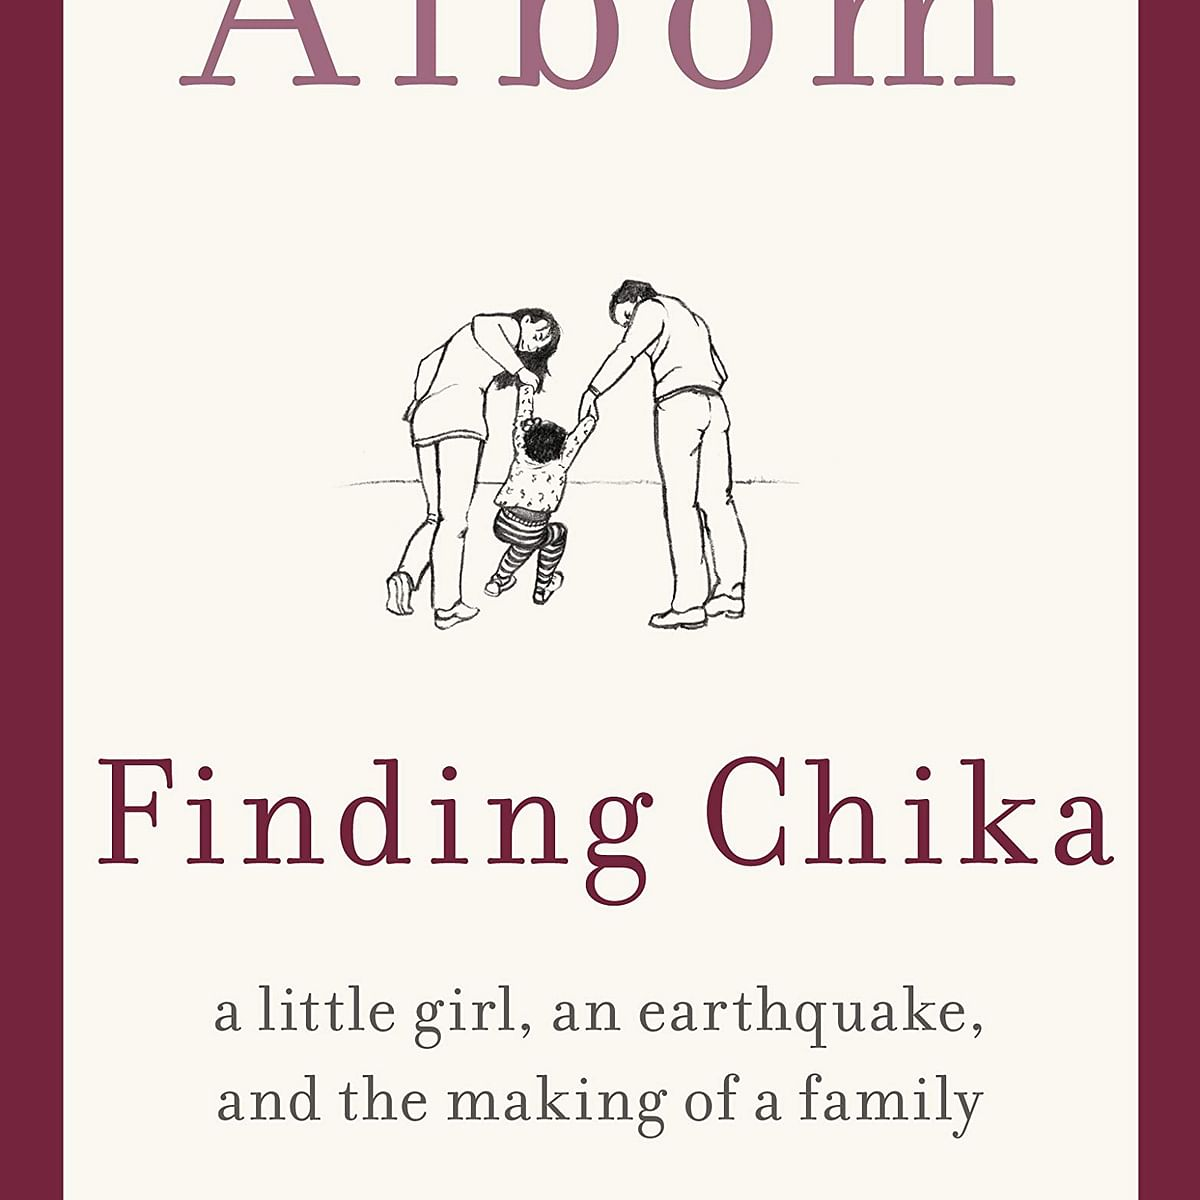 Finding Chika: Nevertheless, you taught us to live